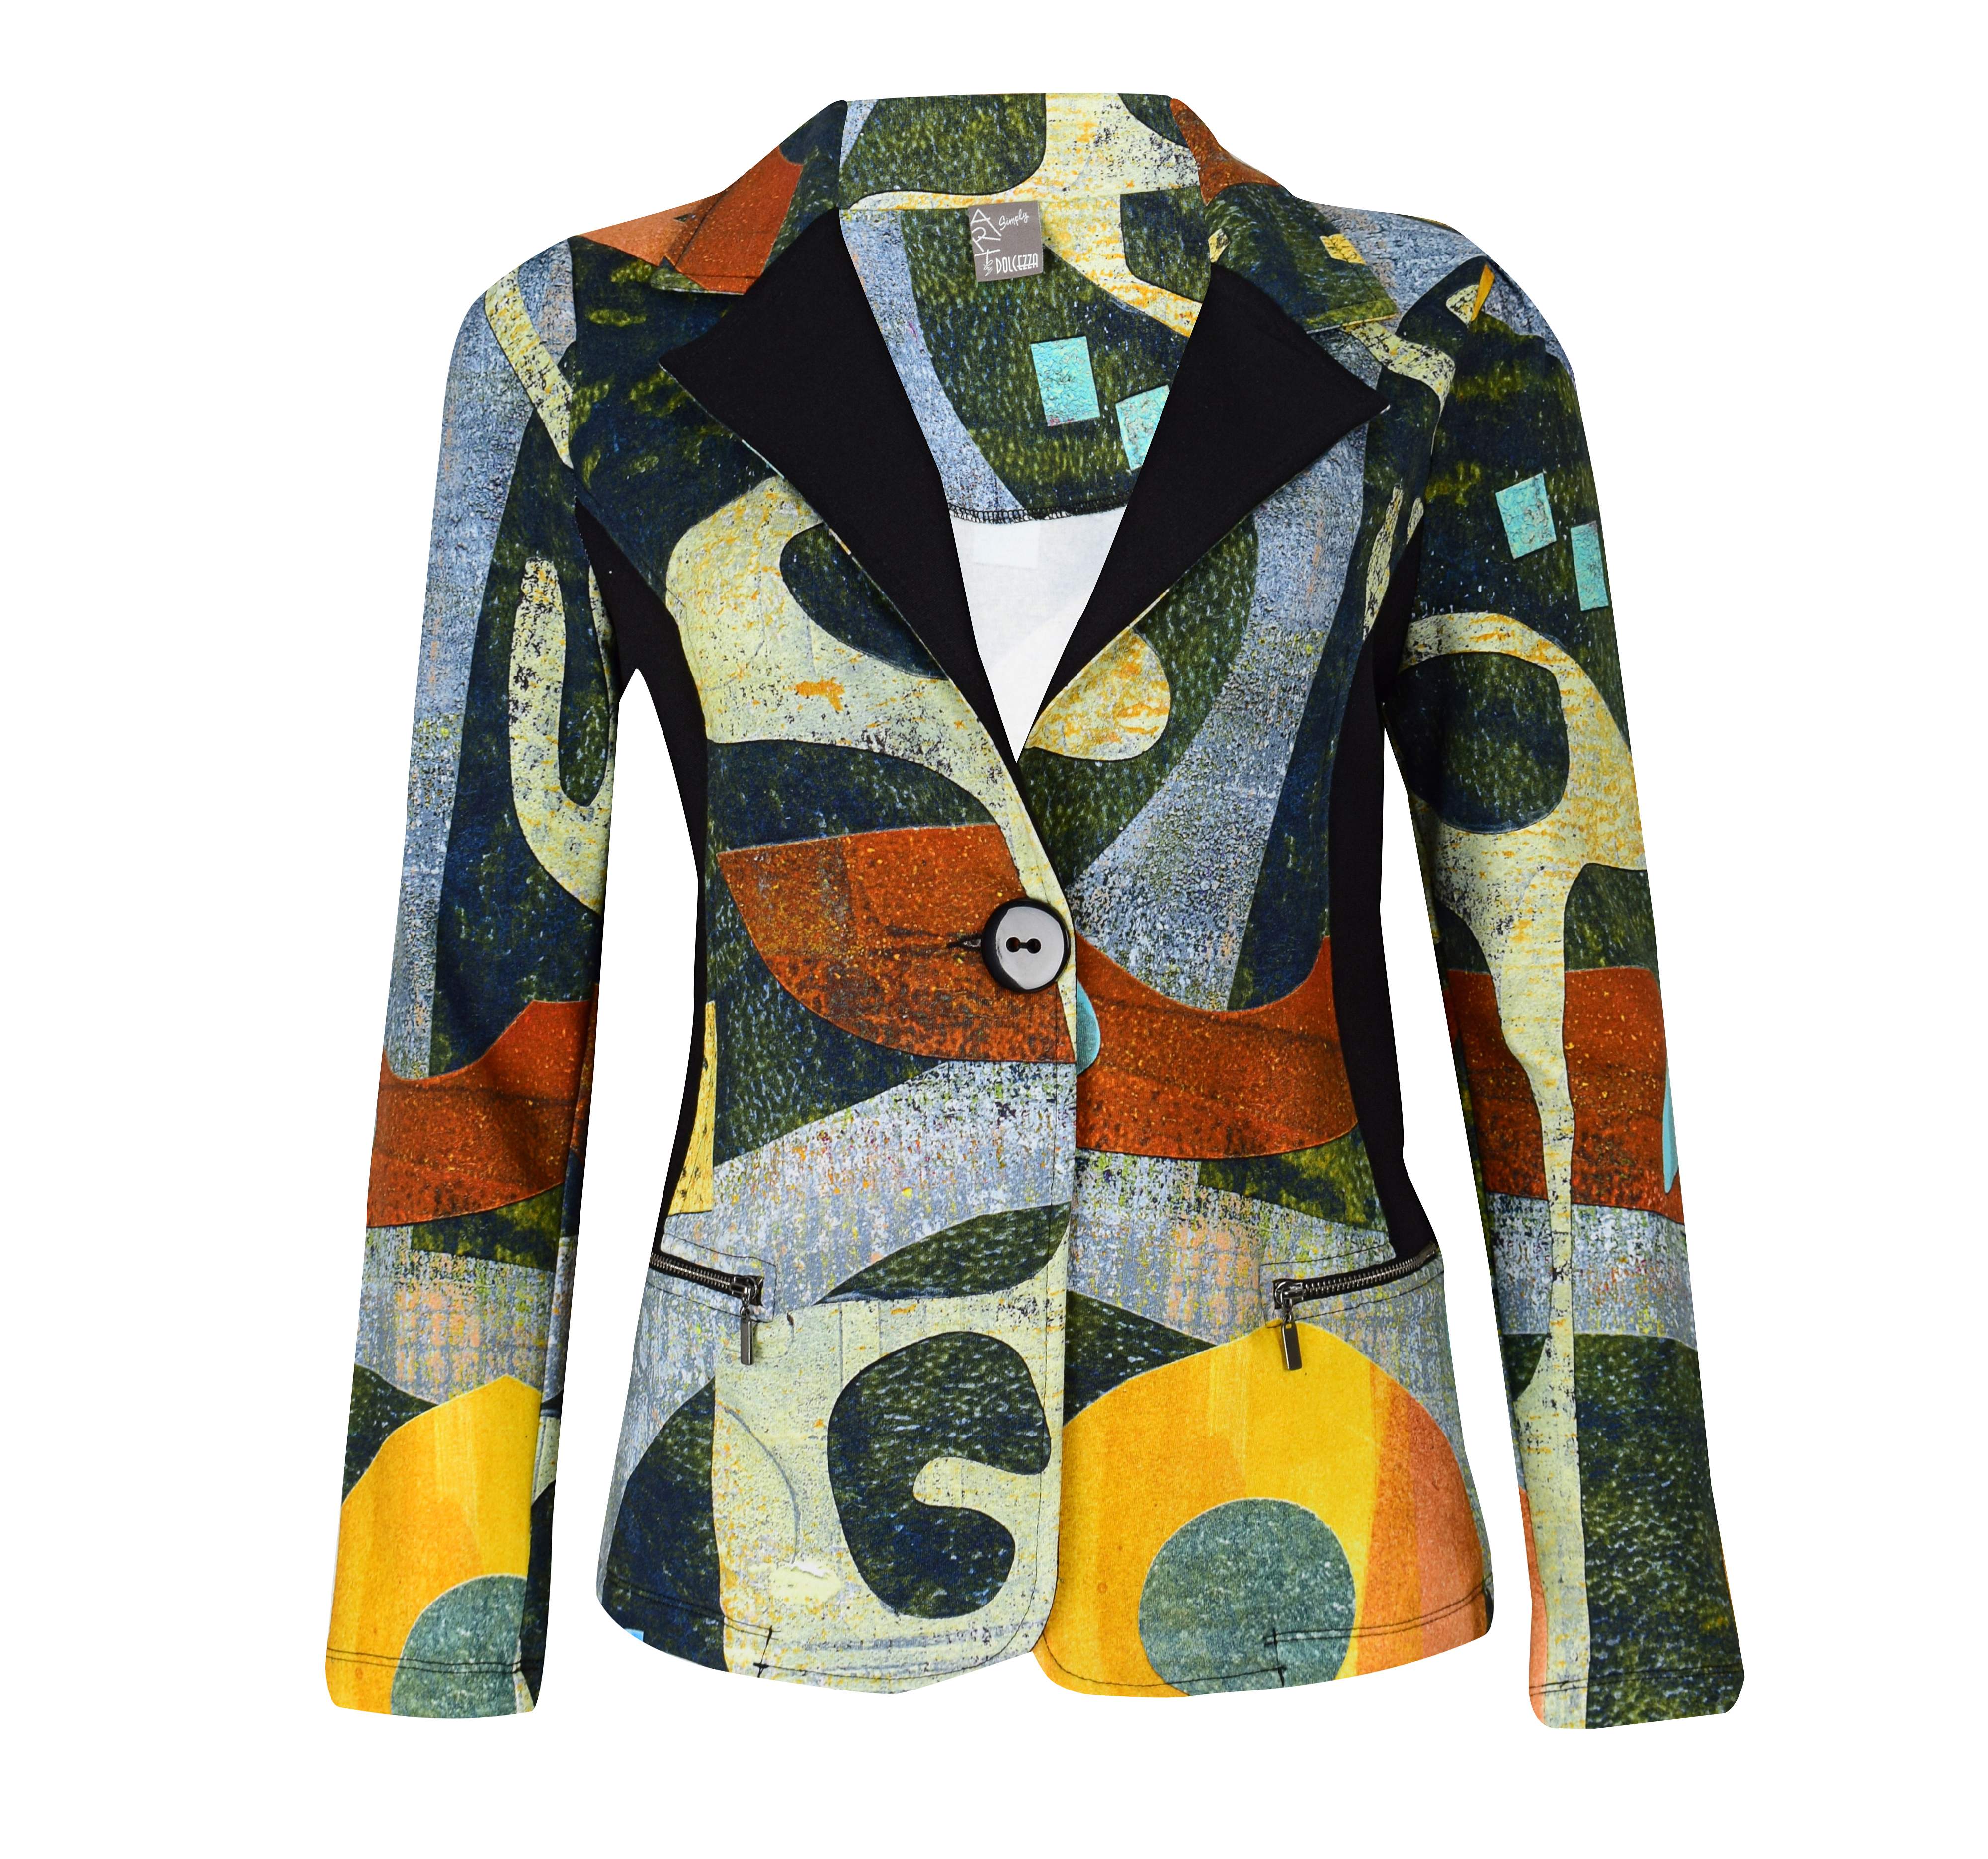 Simply Art Dolcezza: Small Collage Of Eclecticism Abstract Art Jacket Dolcezza_SimplyArt_59746